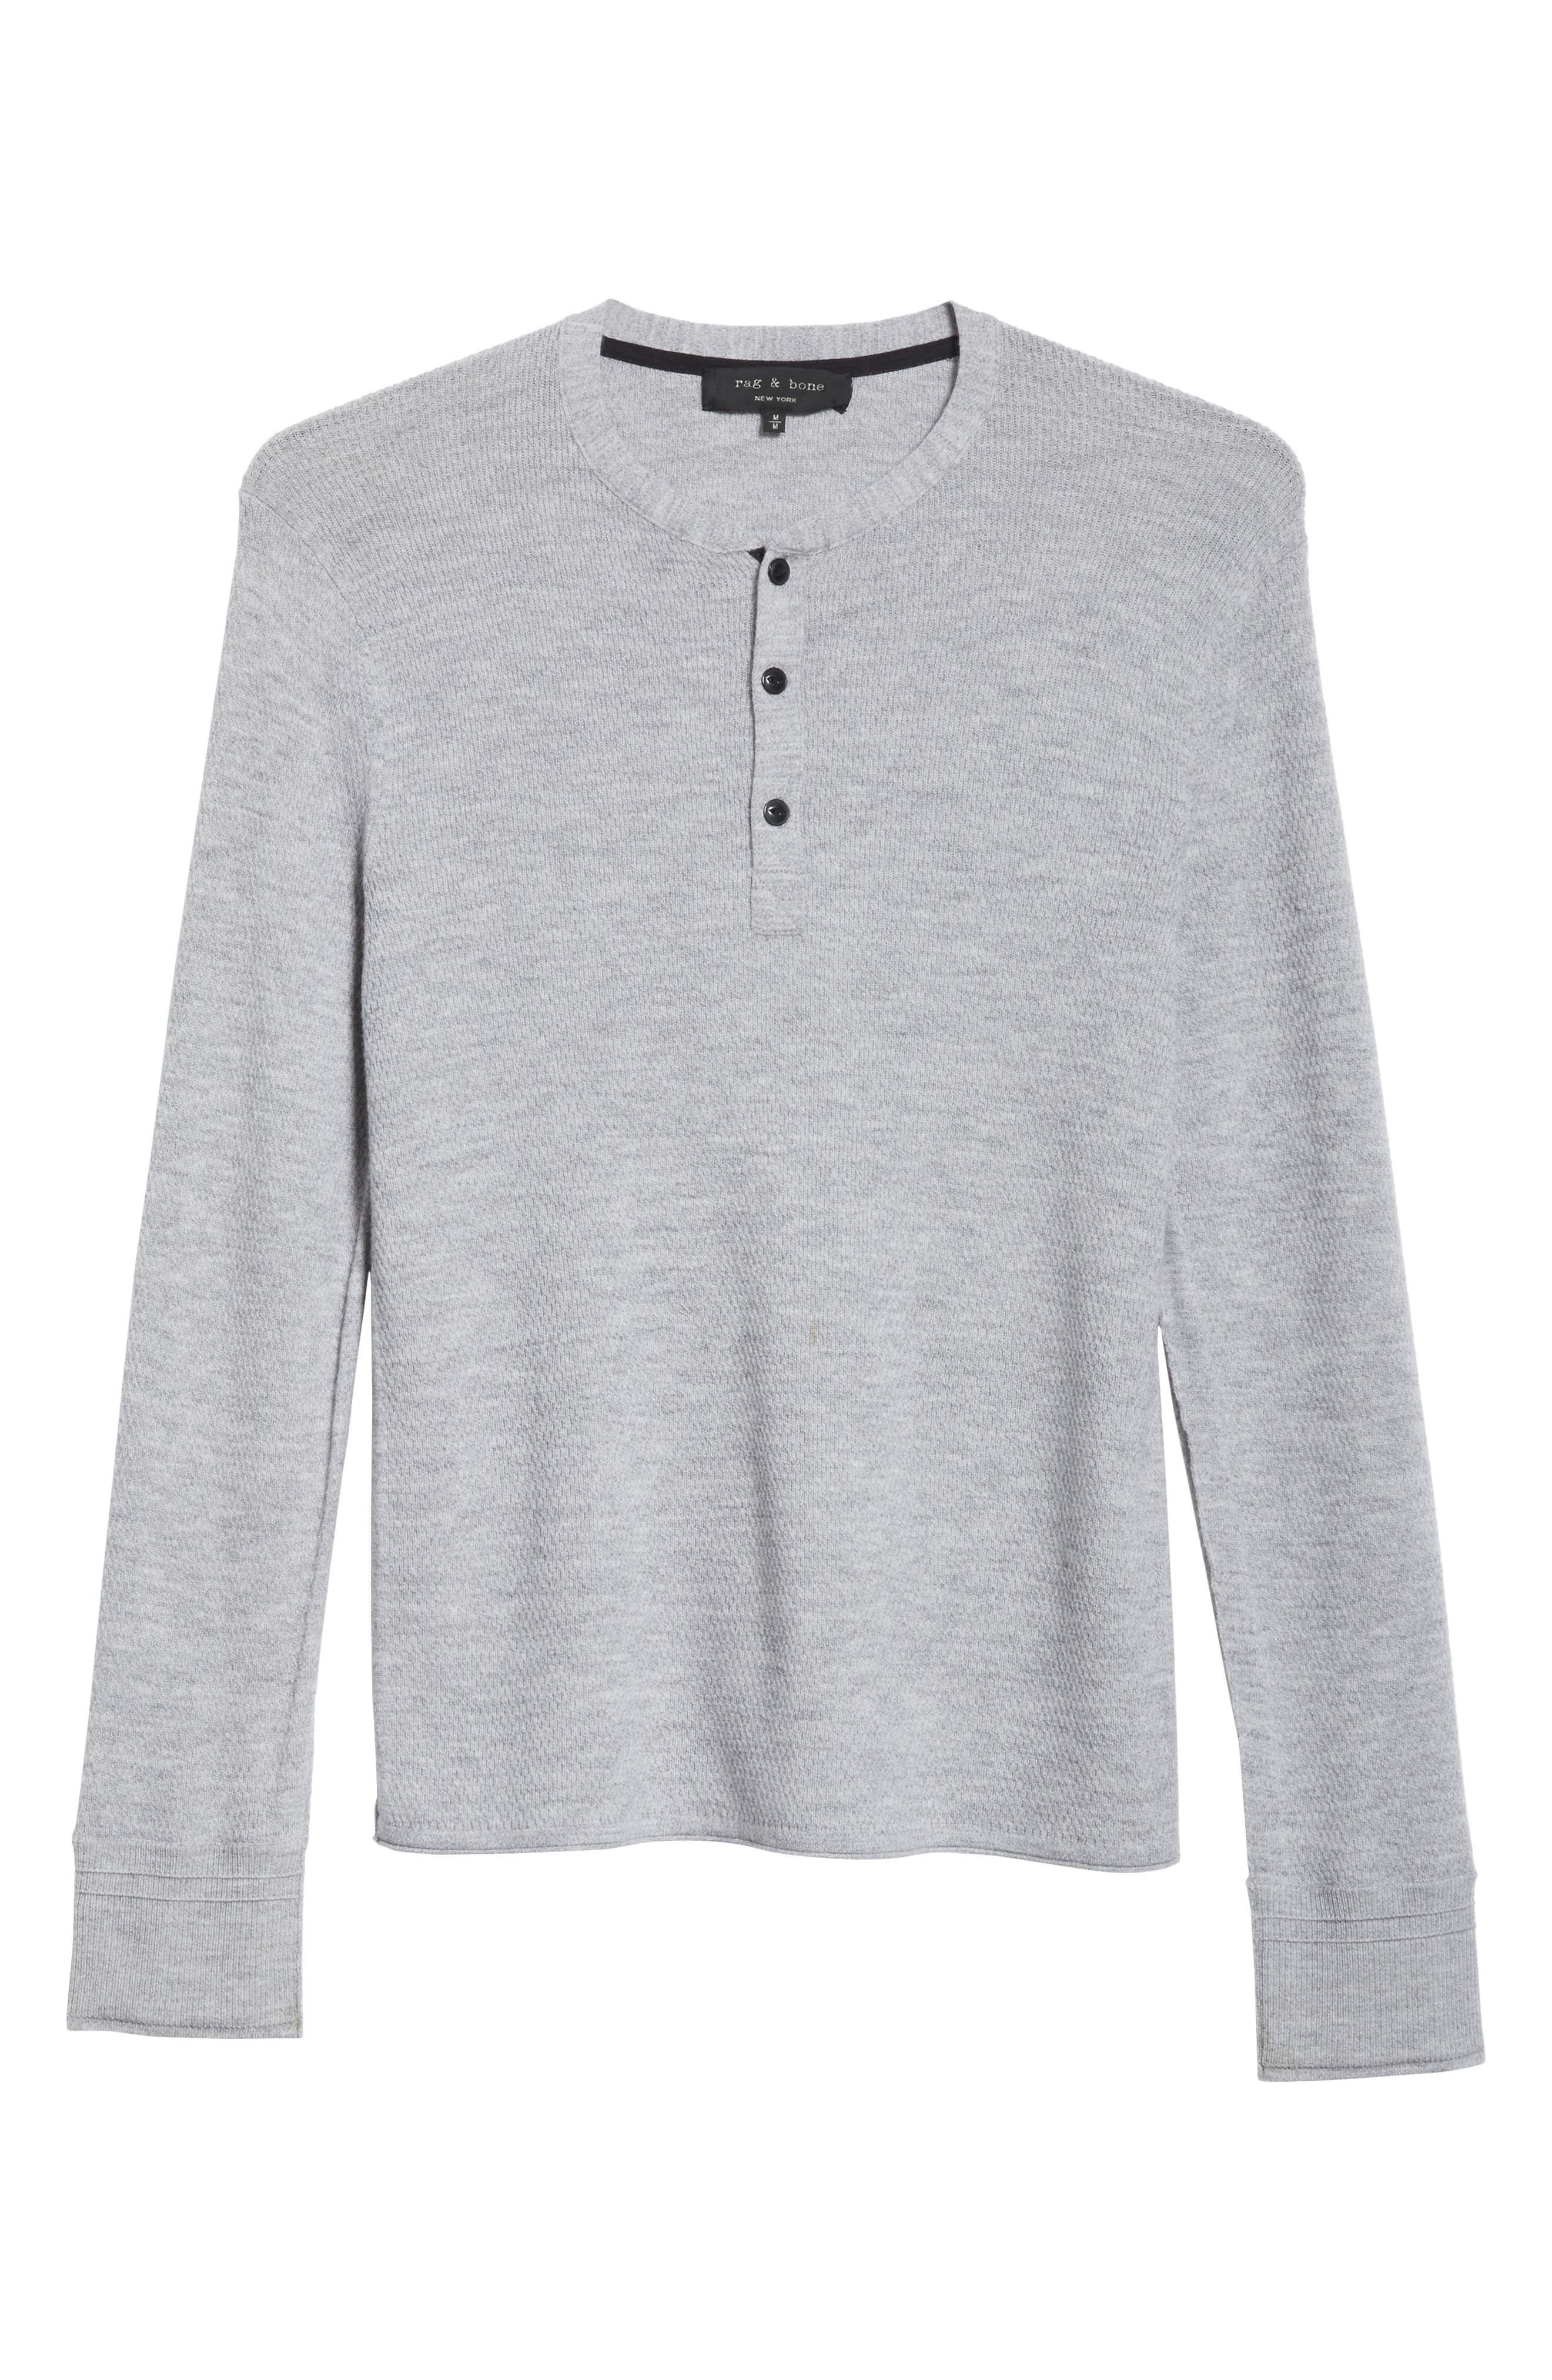 Gregory Wool Blend Thermal Henley,                             Alternate thumbnail 6, color,                             GREY